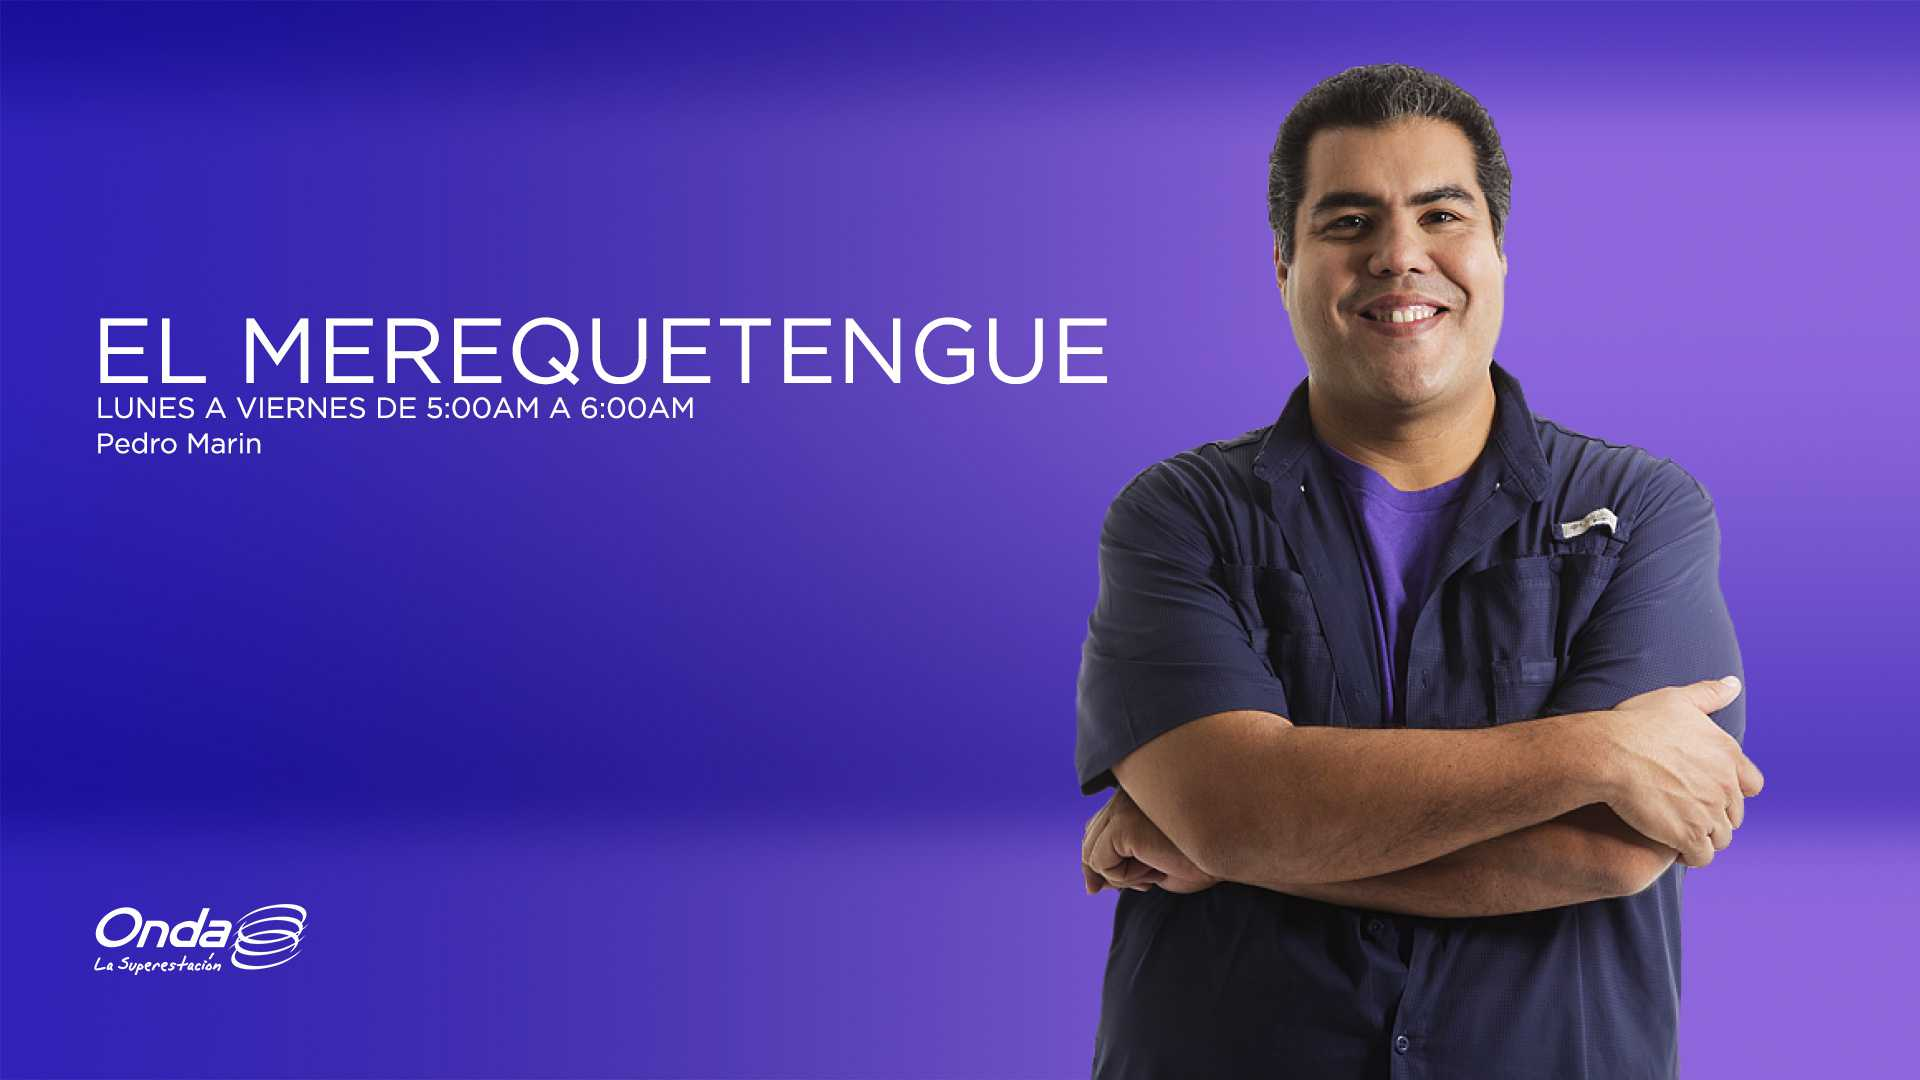 hero-el-merequetengue